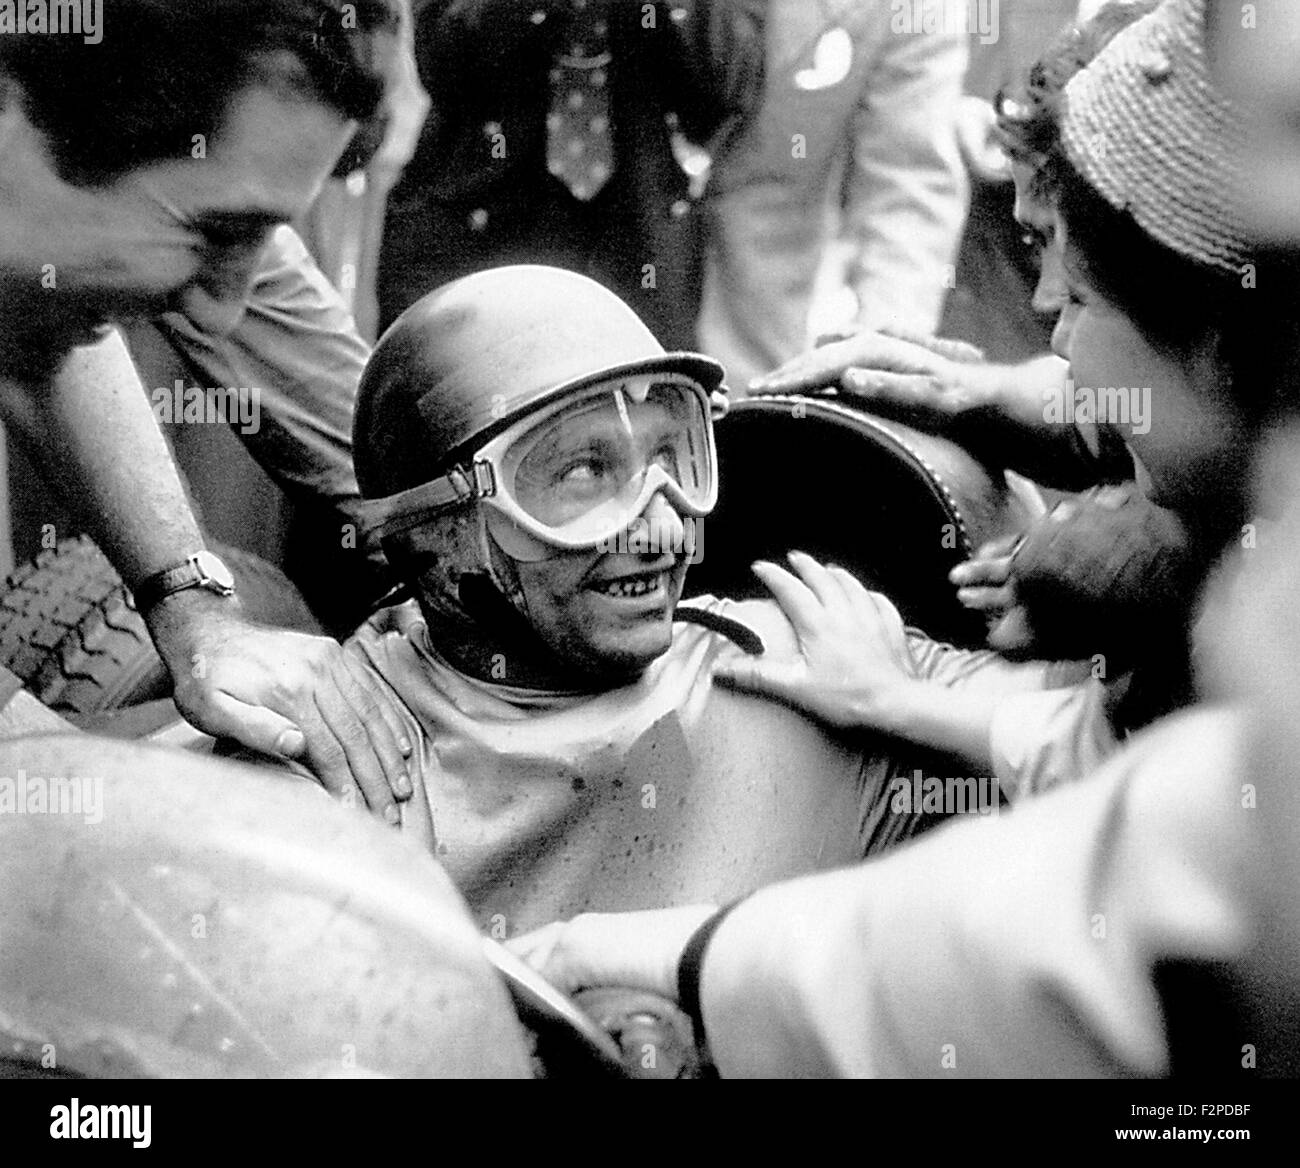 Juan Manuel and Andreina Fangio after winning a Grand Prix 1950s - Stock Image